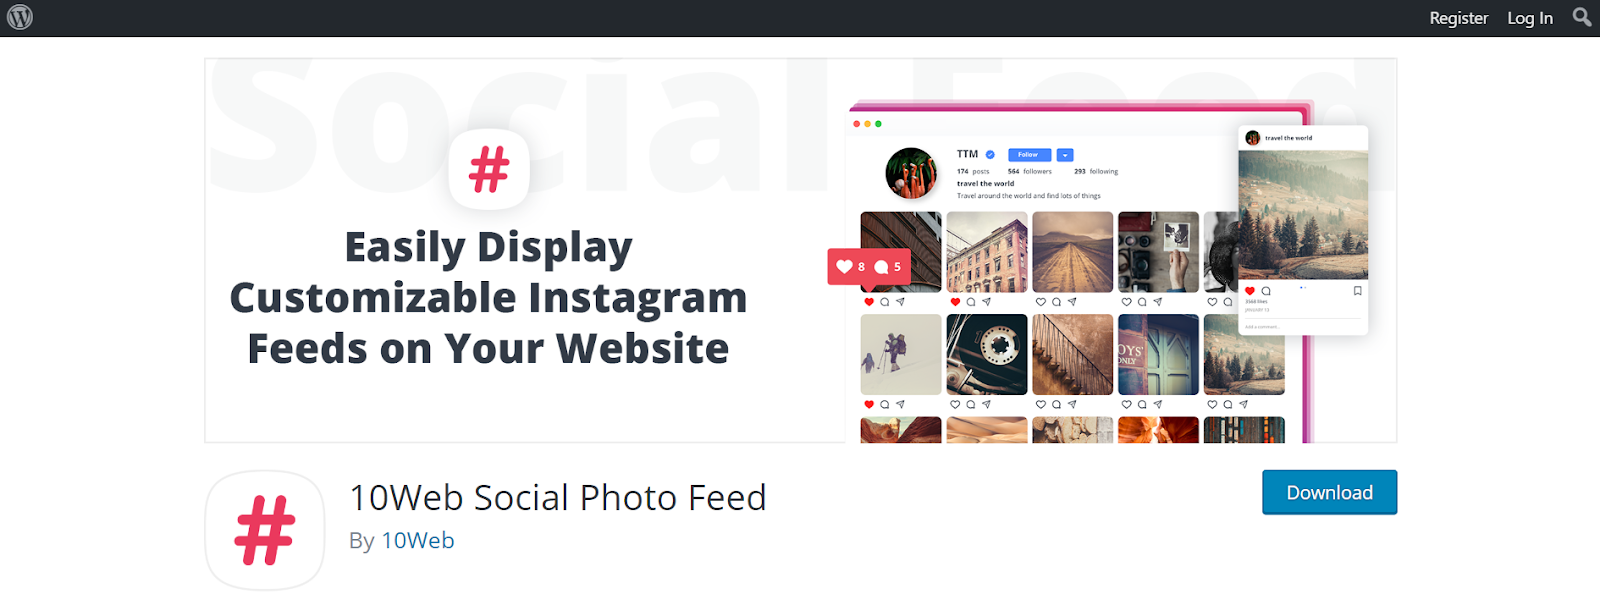 Instagram marketing tools for WordPress